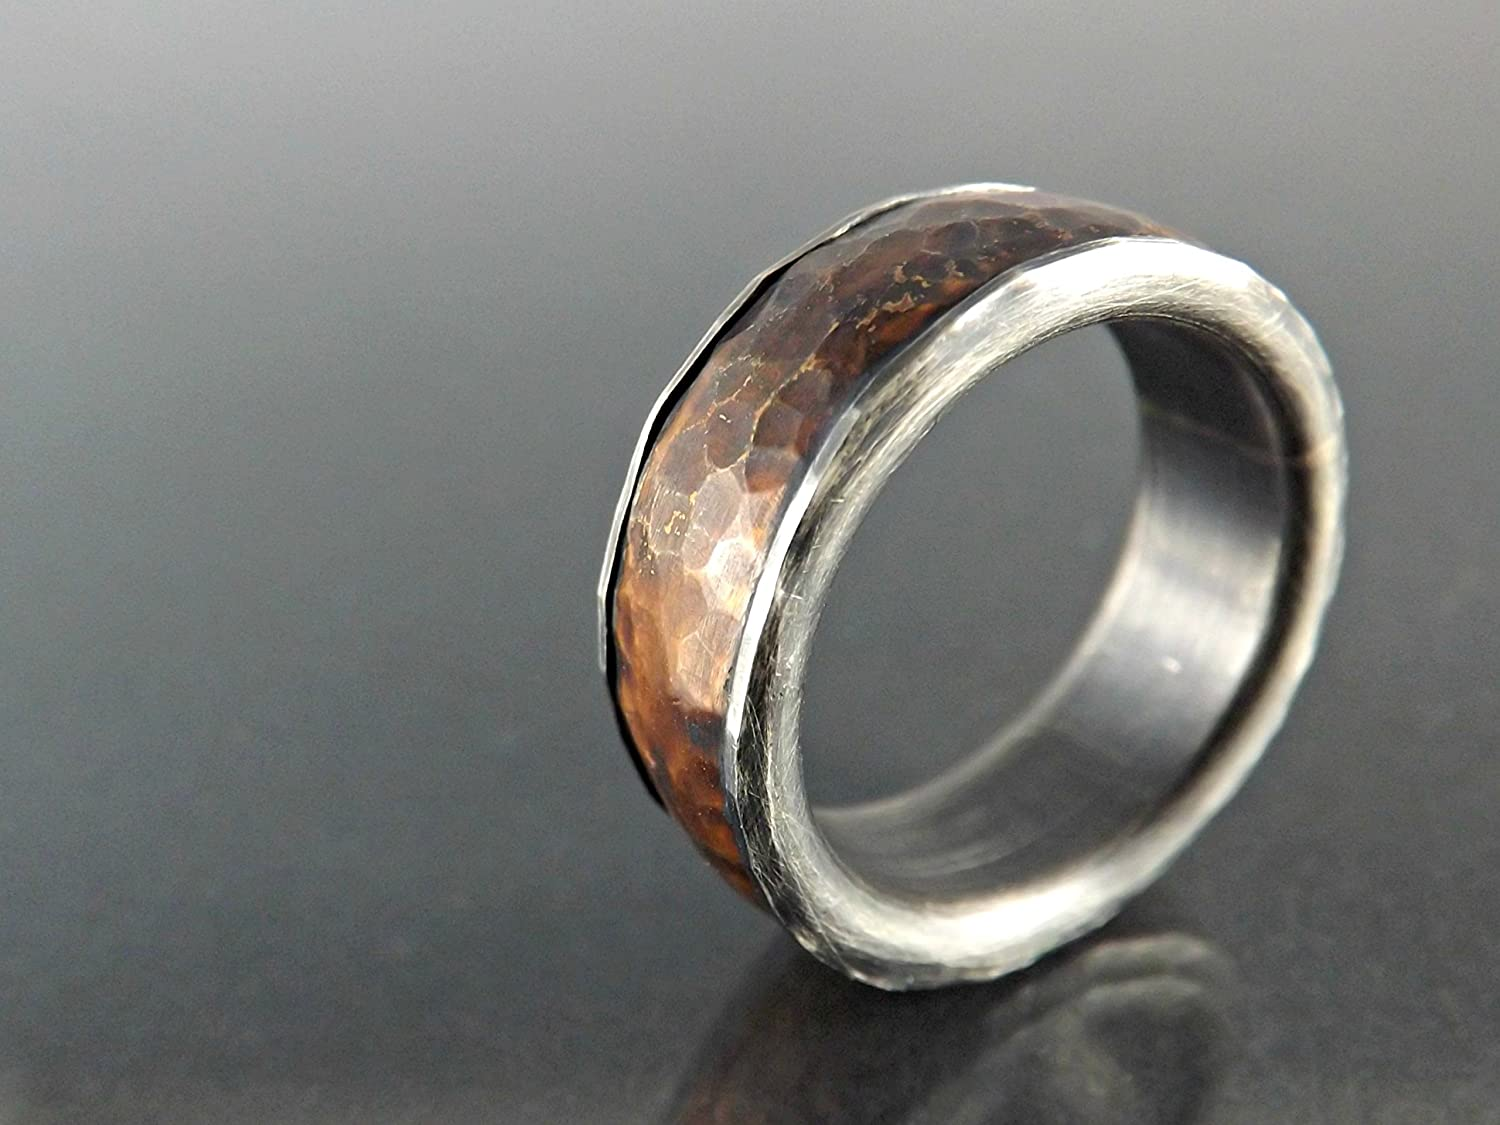 wedding il s ring rustic unique iron hammered made rings listing forged men